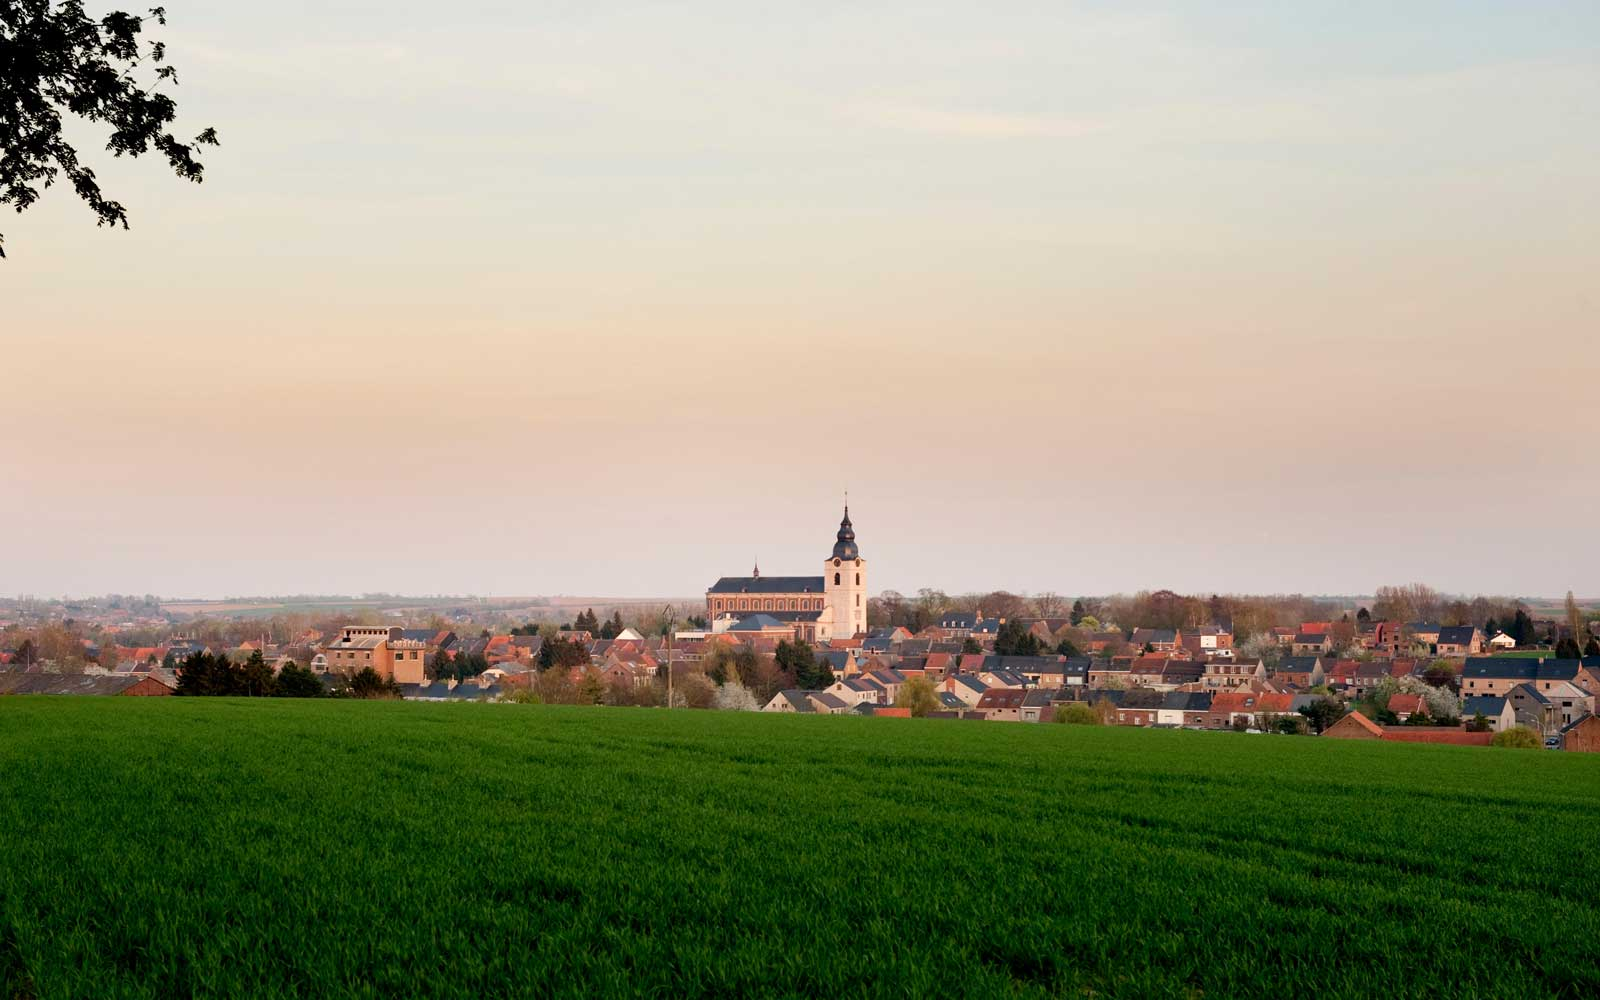 You Could Get Paid to Drink Beer and Explore Belgium With Your Friends This Spring Break